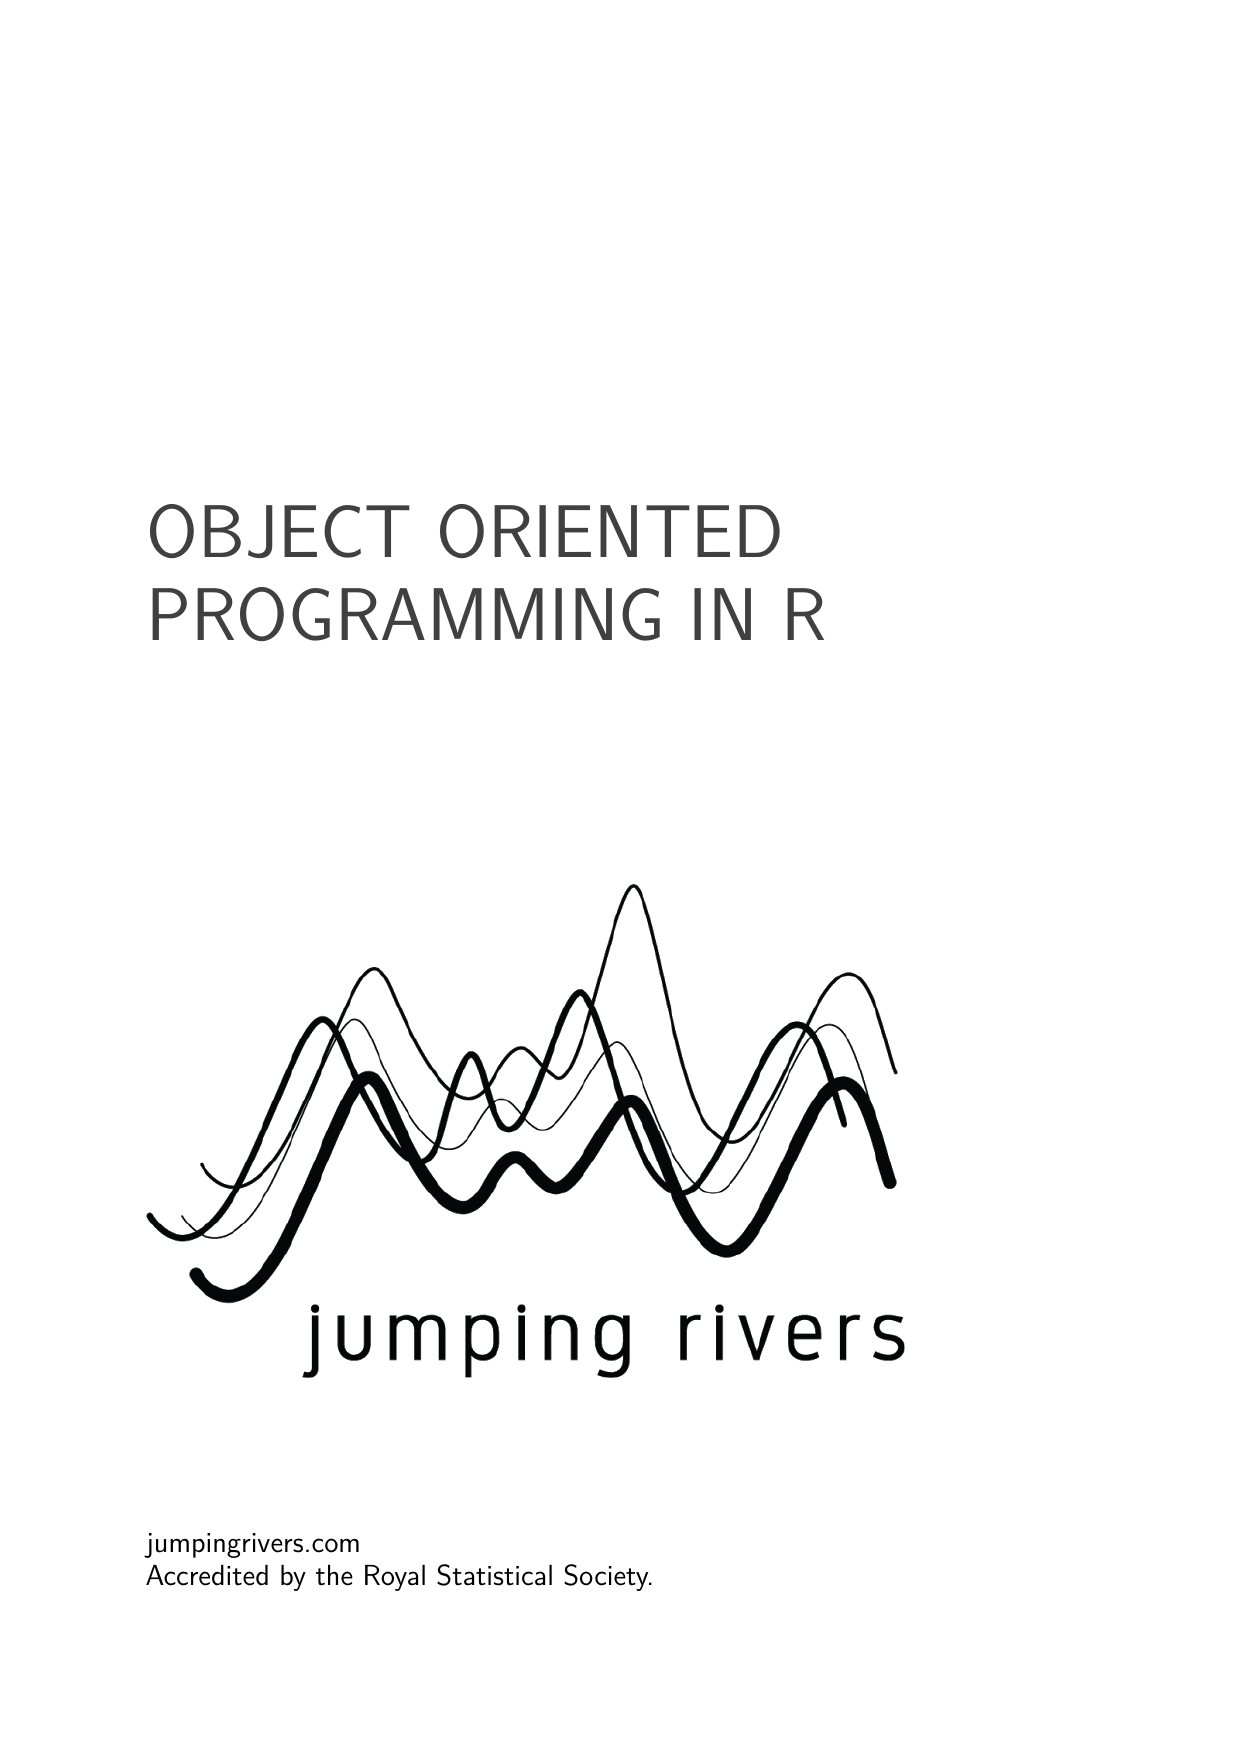 Example course material for 'Object Oriented Programming in R